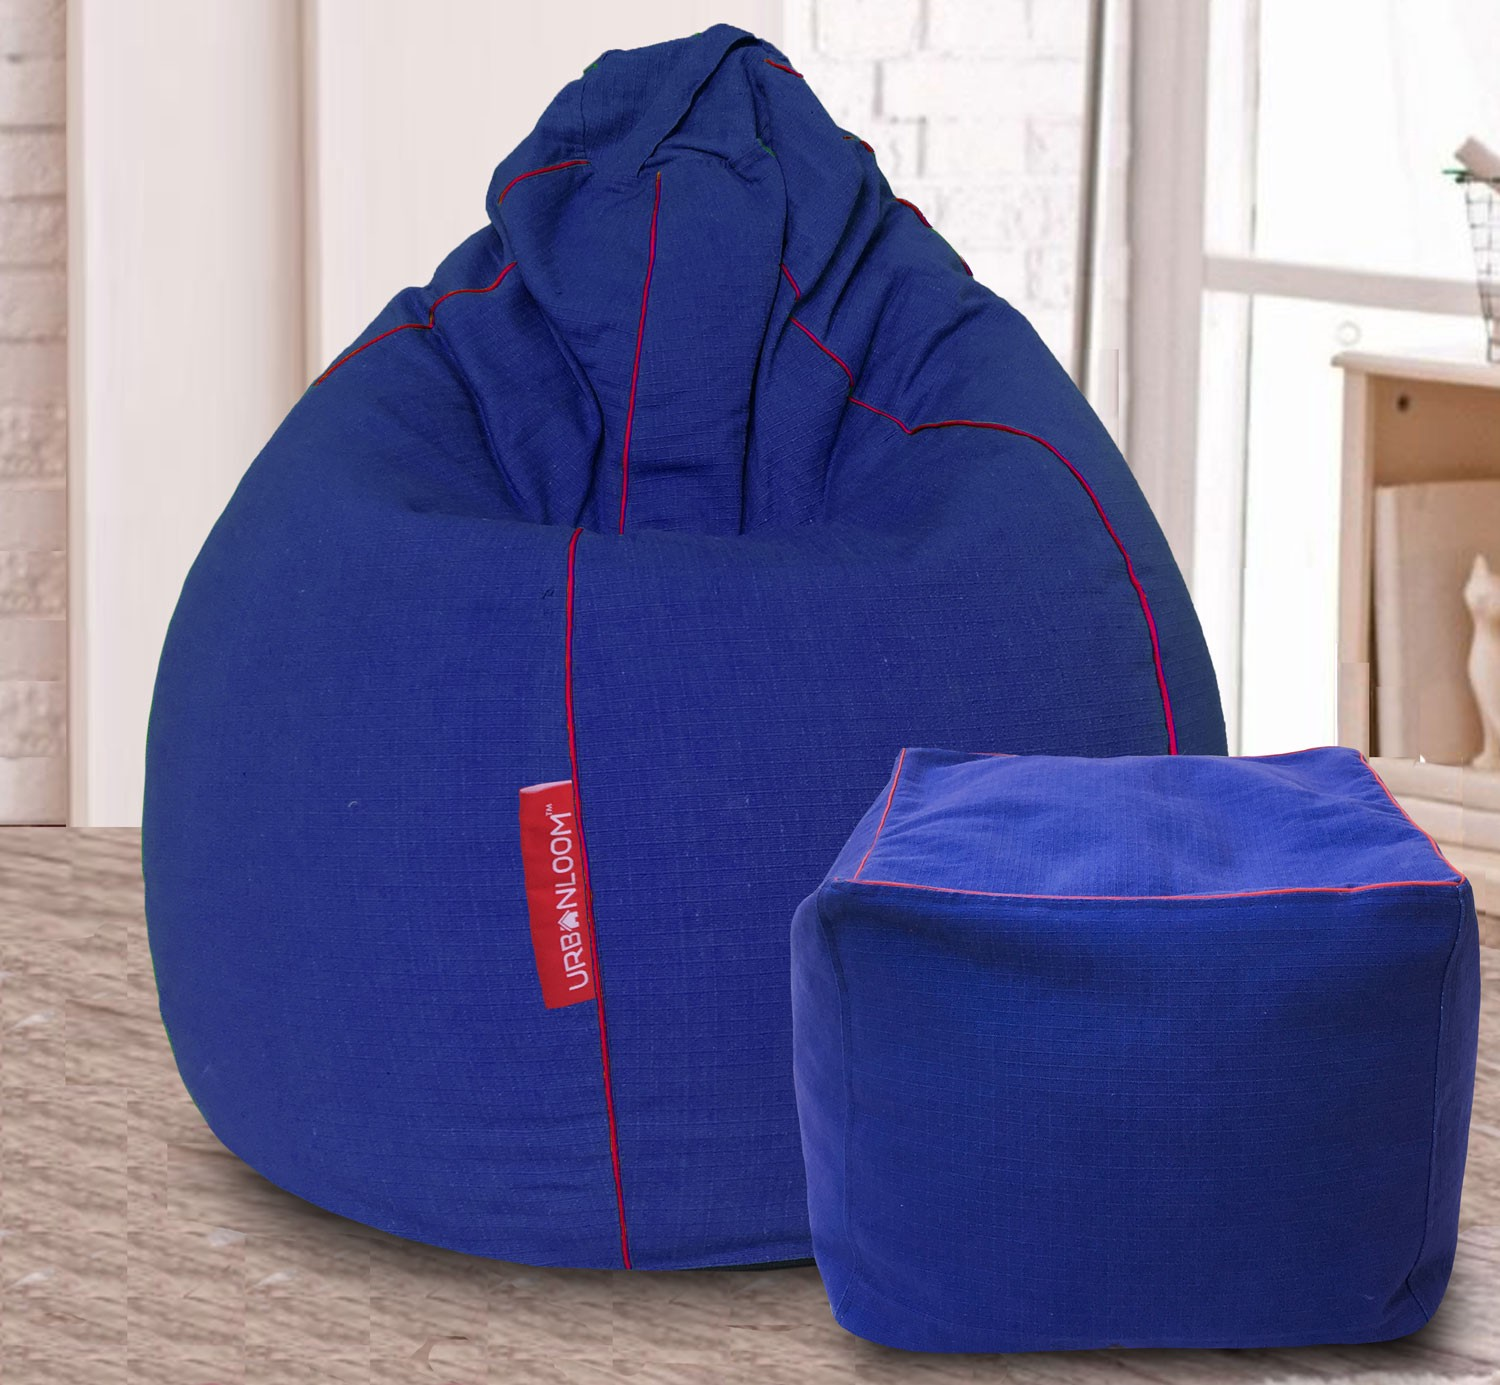 Remarkable How Do I Select The Size Of A Bean Bag How Much Beans Are Inzonedesignstudio Interior Chair Design Inzonedesignstudiocom